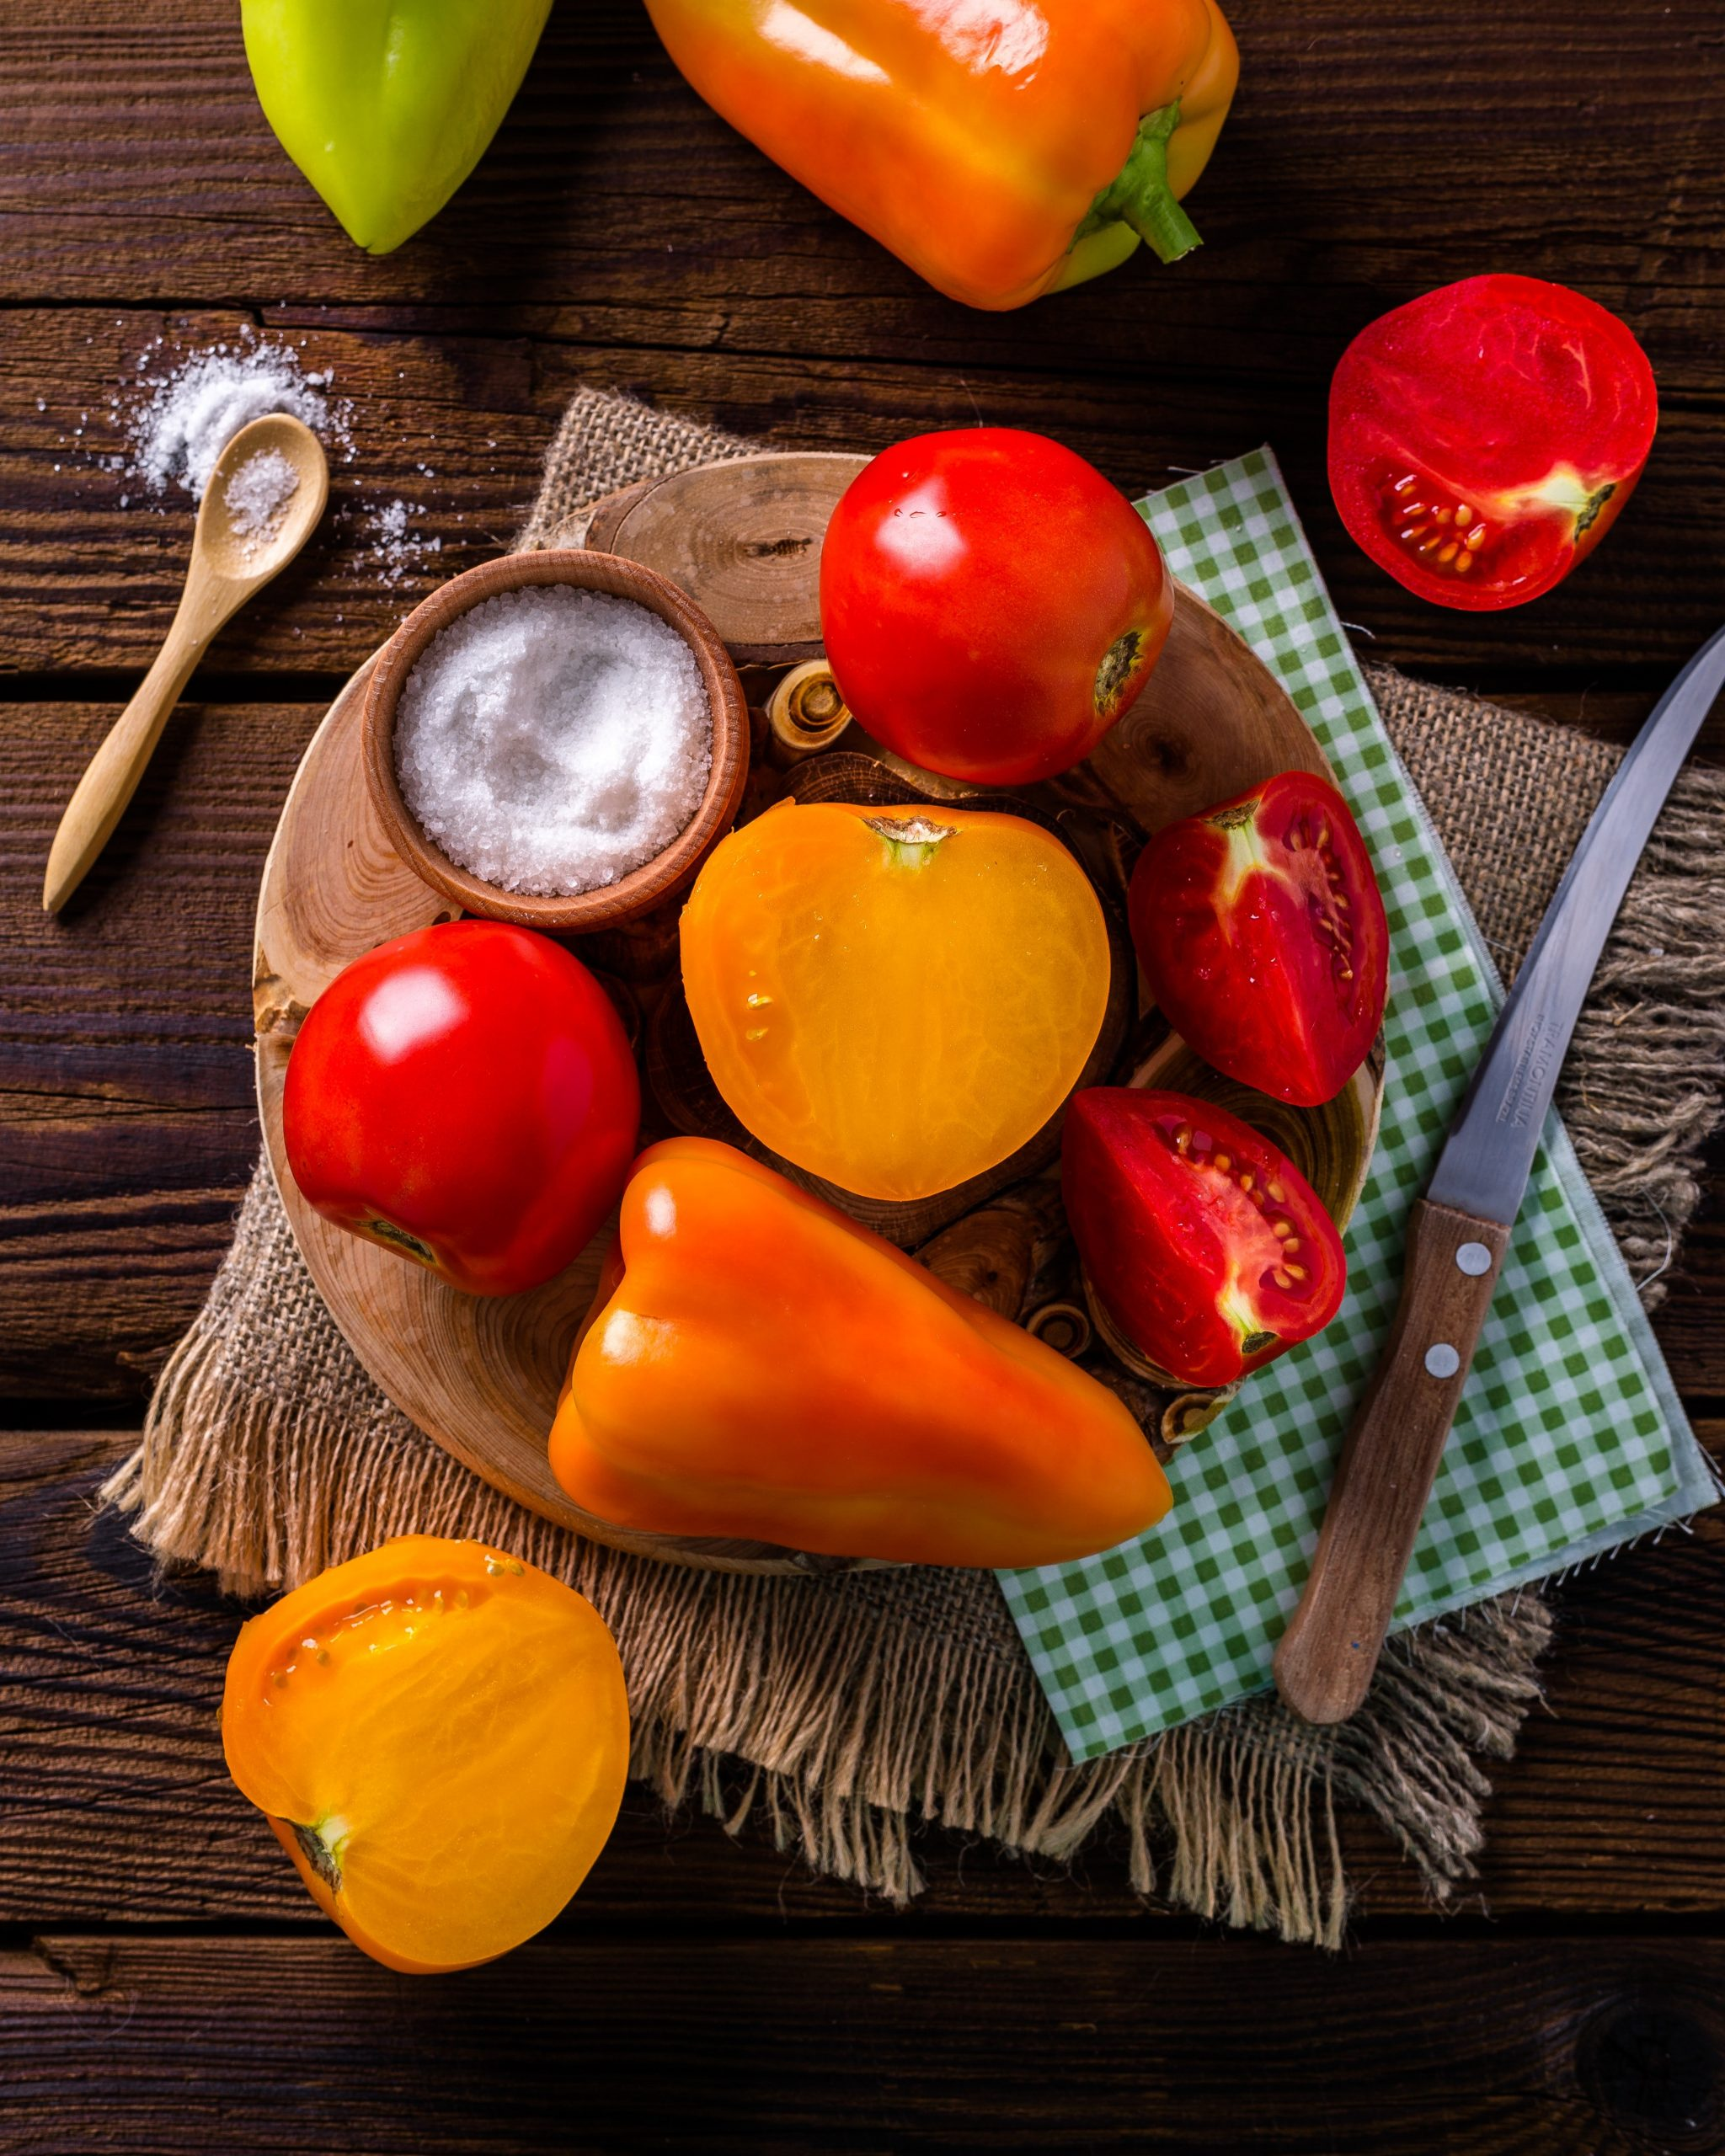 Learning to can food: Water bath and pressure canning - The Hot Mess Press